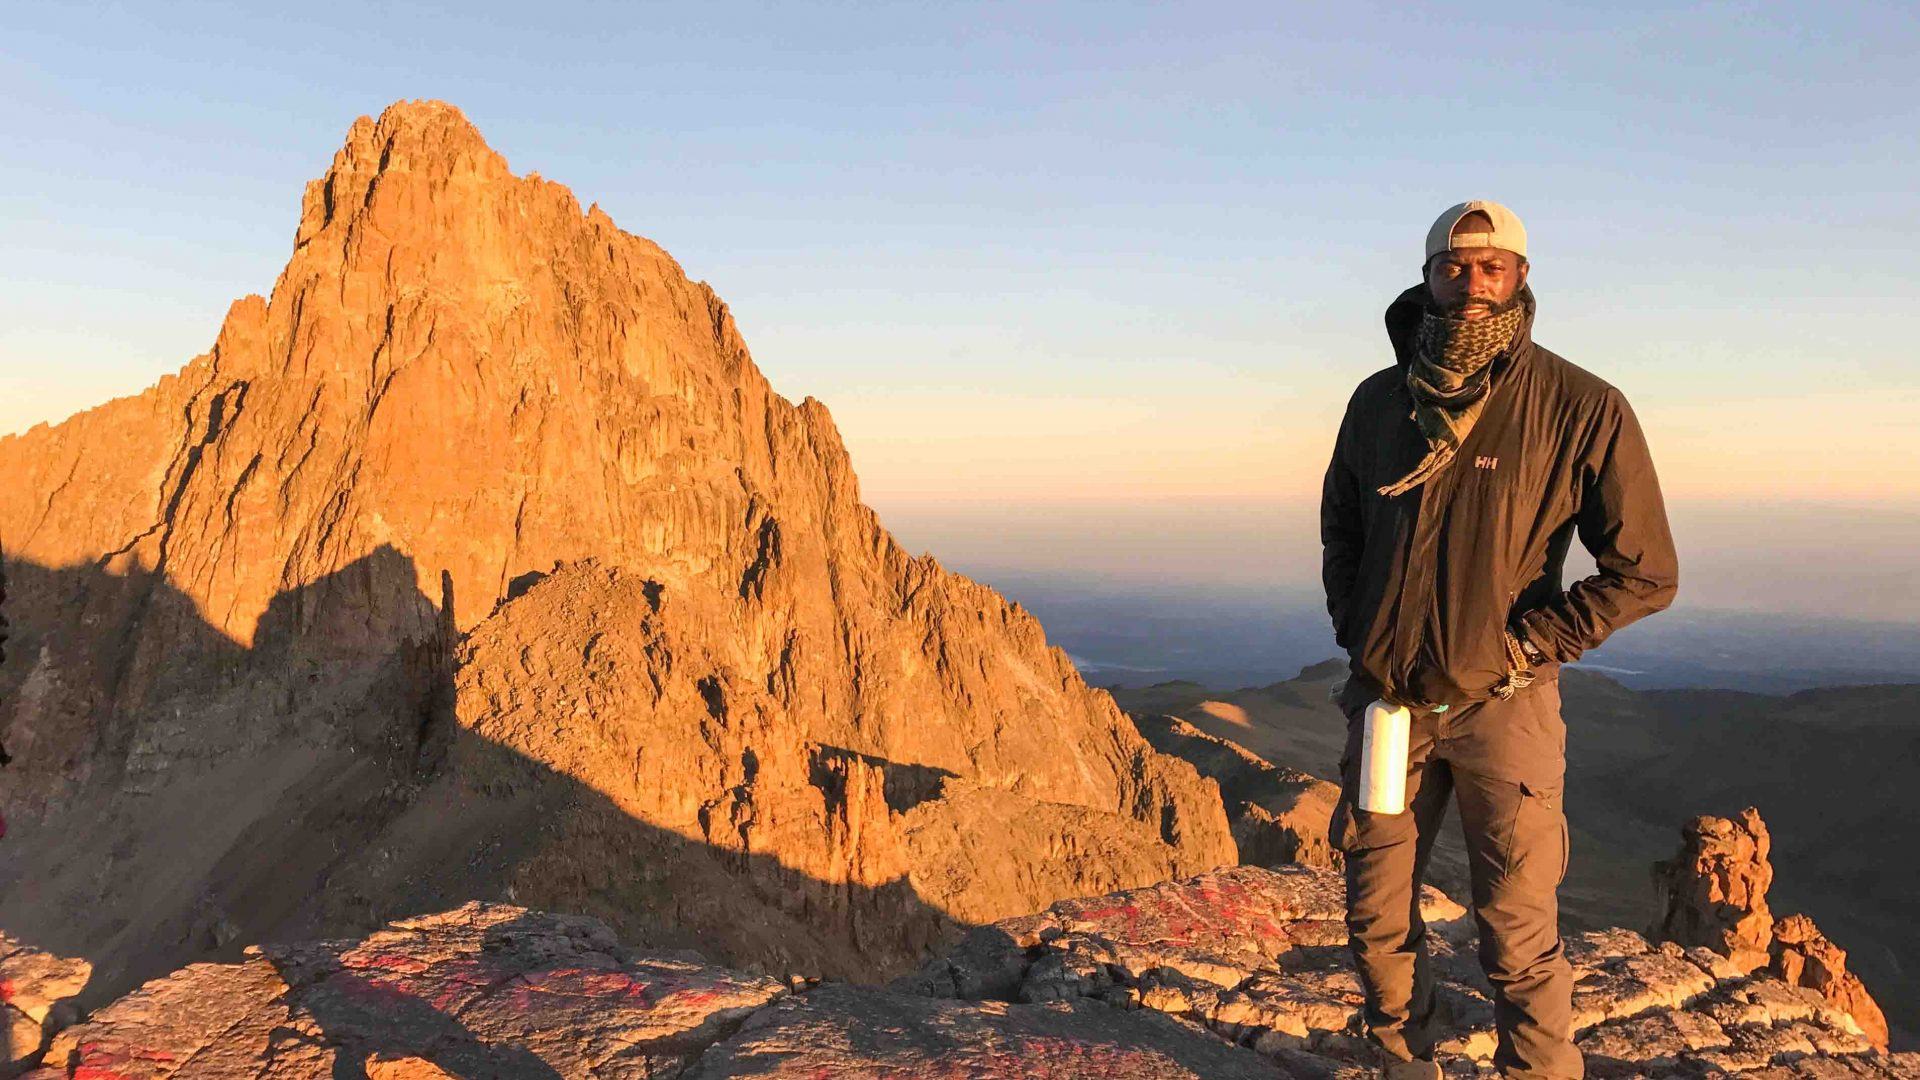 Mario Rigby at Mount Kenya.